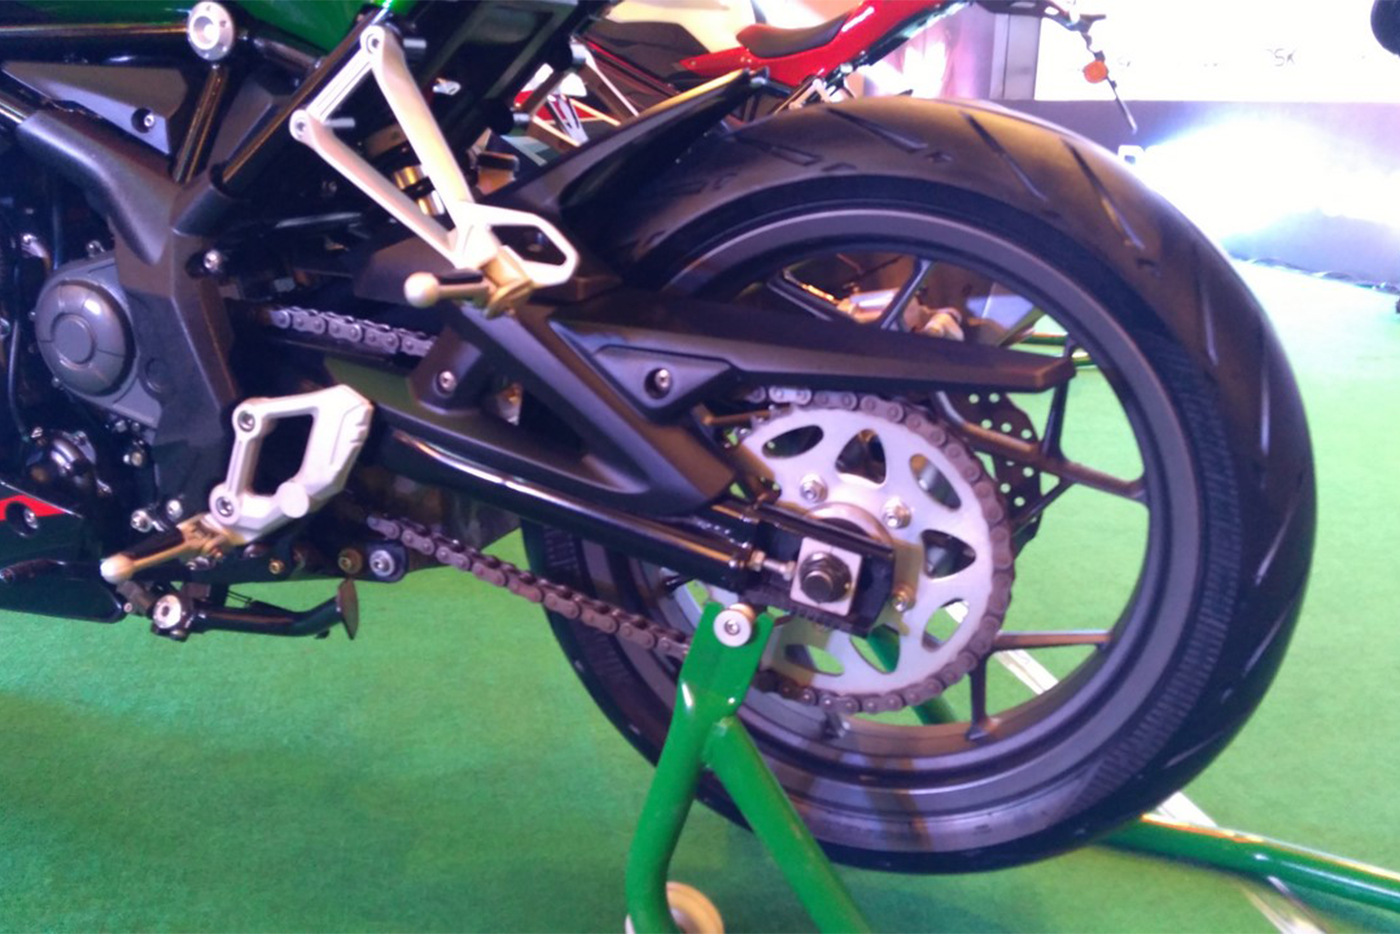 dsk-benelli-302r-rear-wheel.jpg